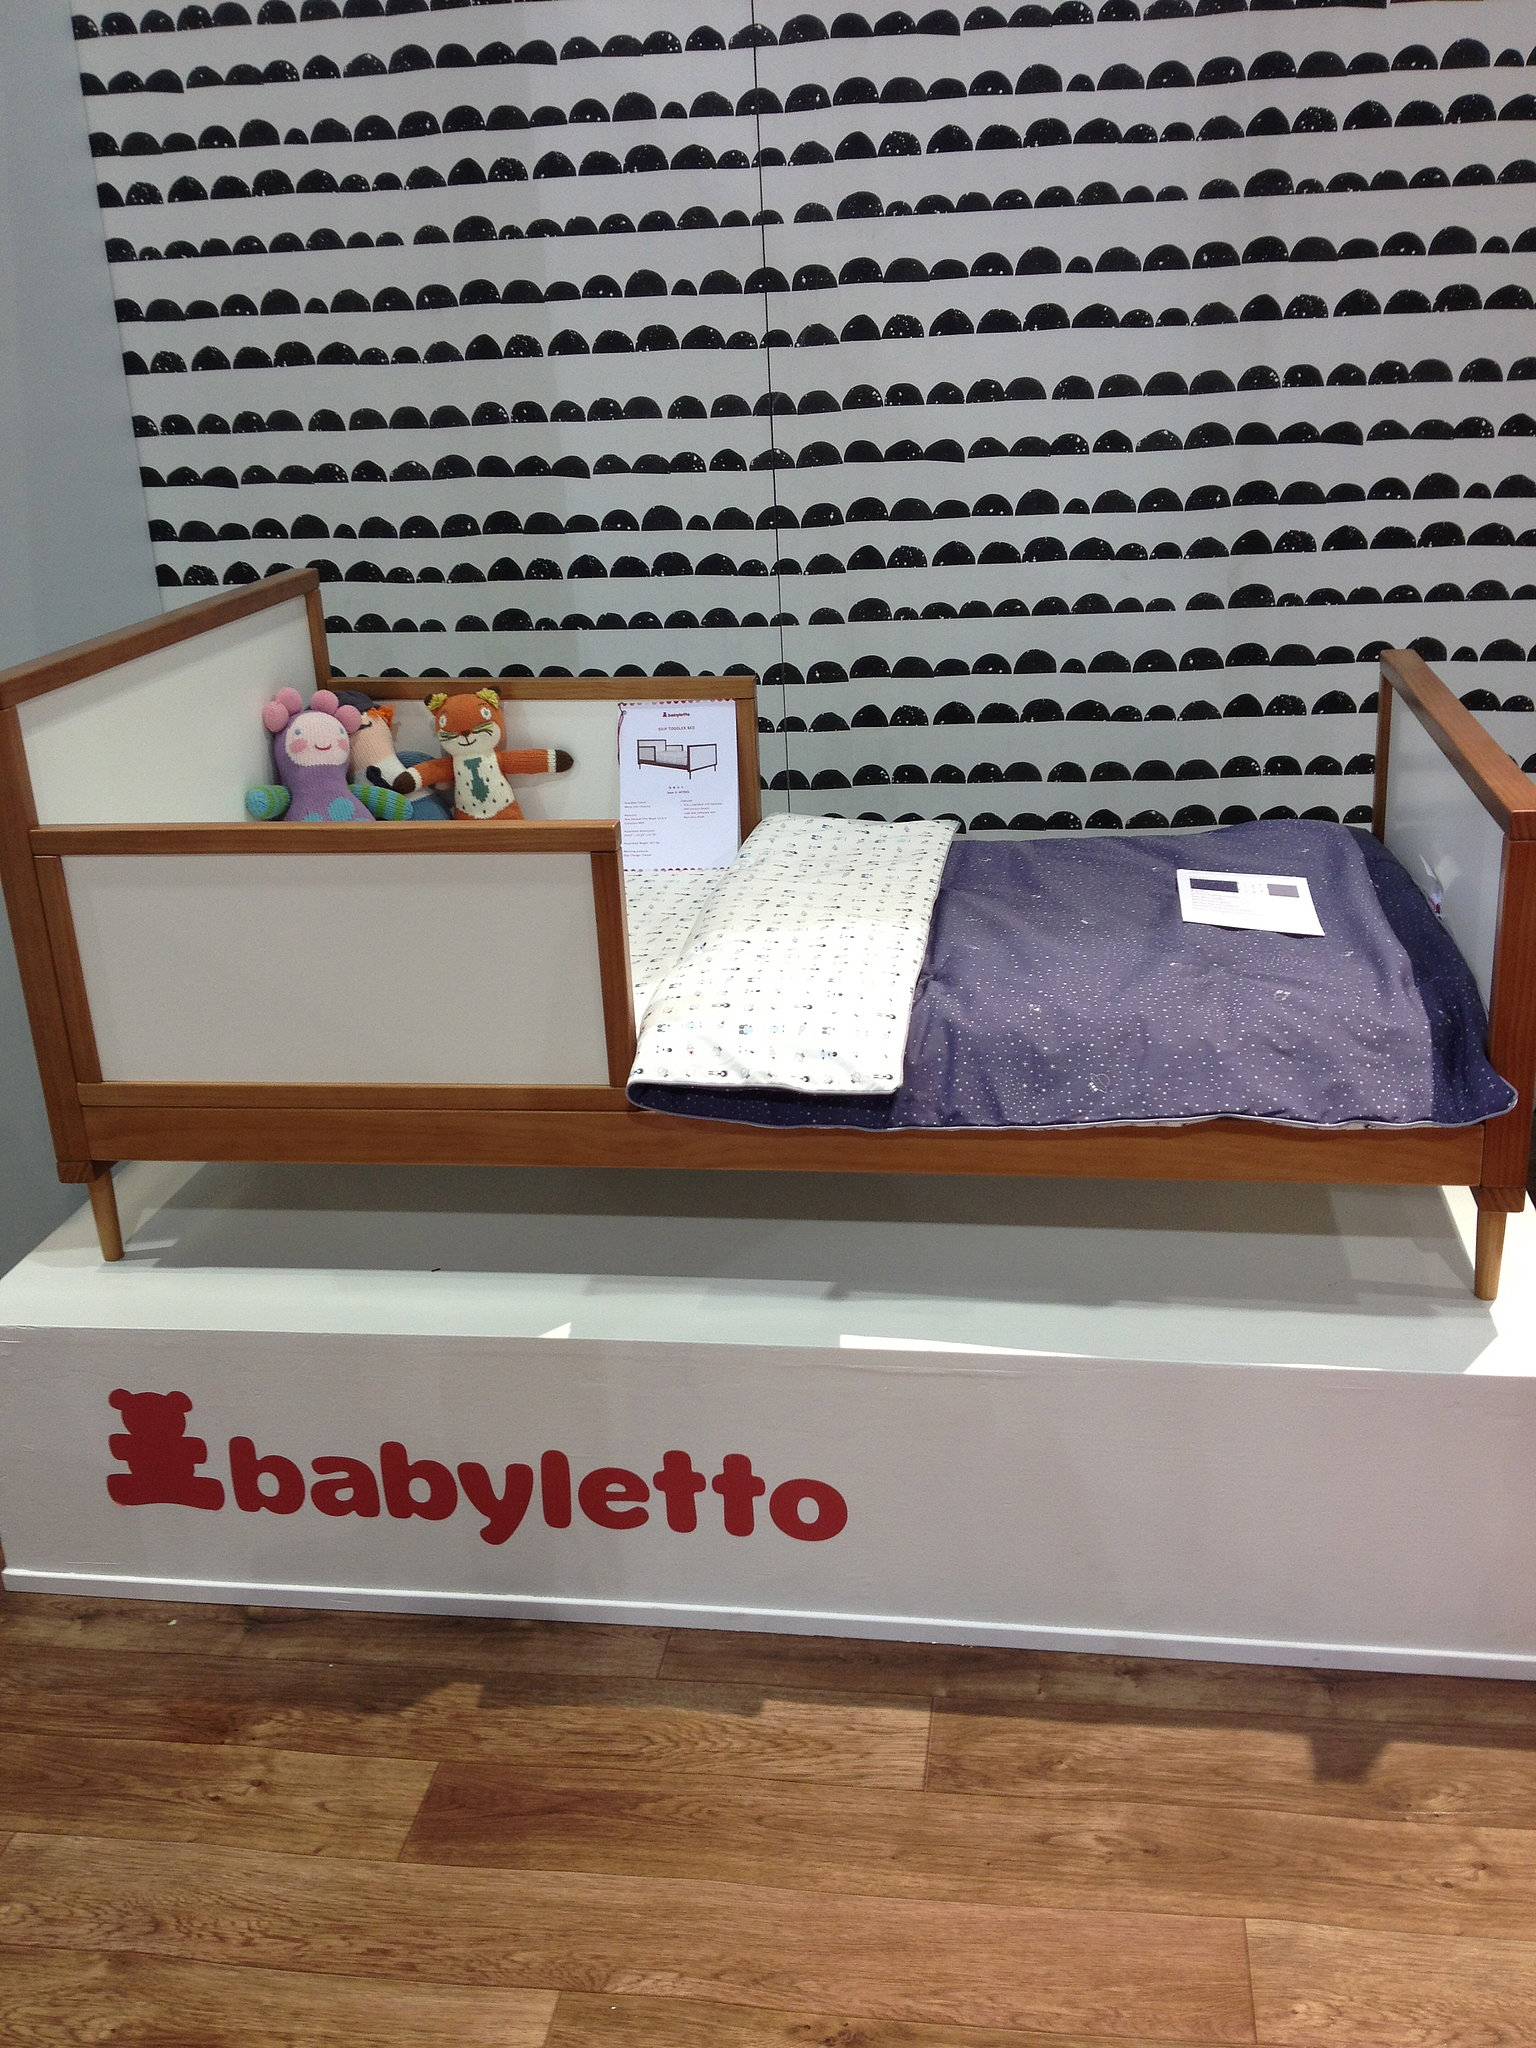 The Babyletto Toddler Bed Is Perfect For Minimalist Kids Rooms